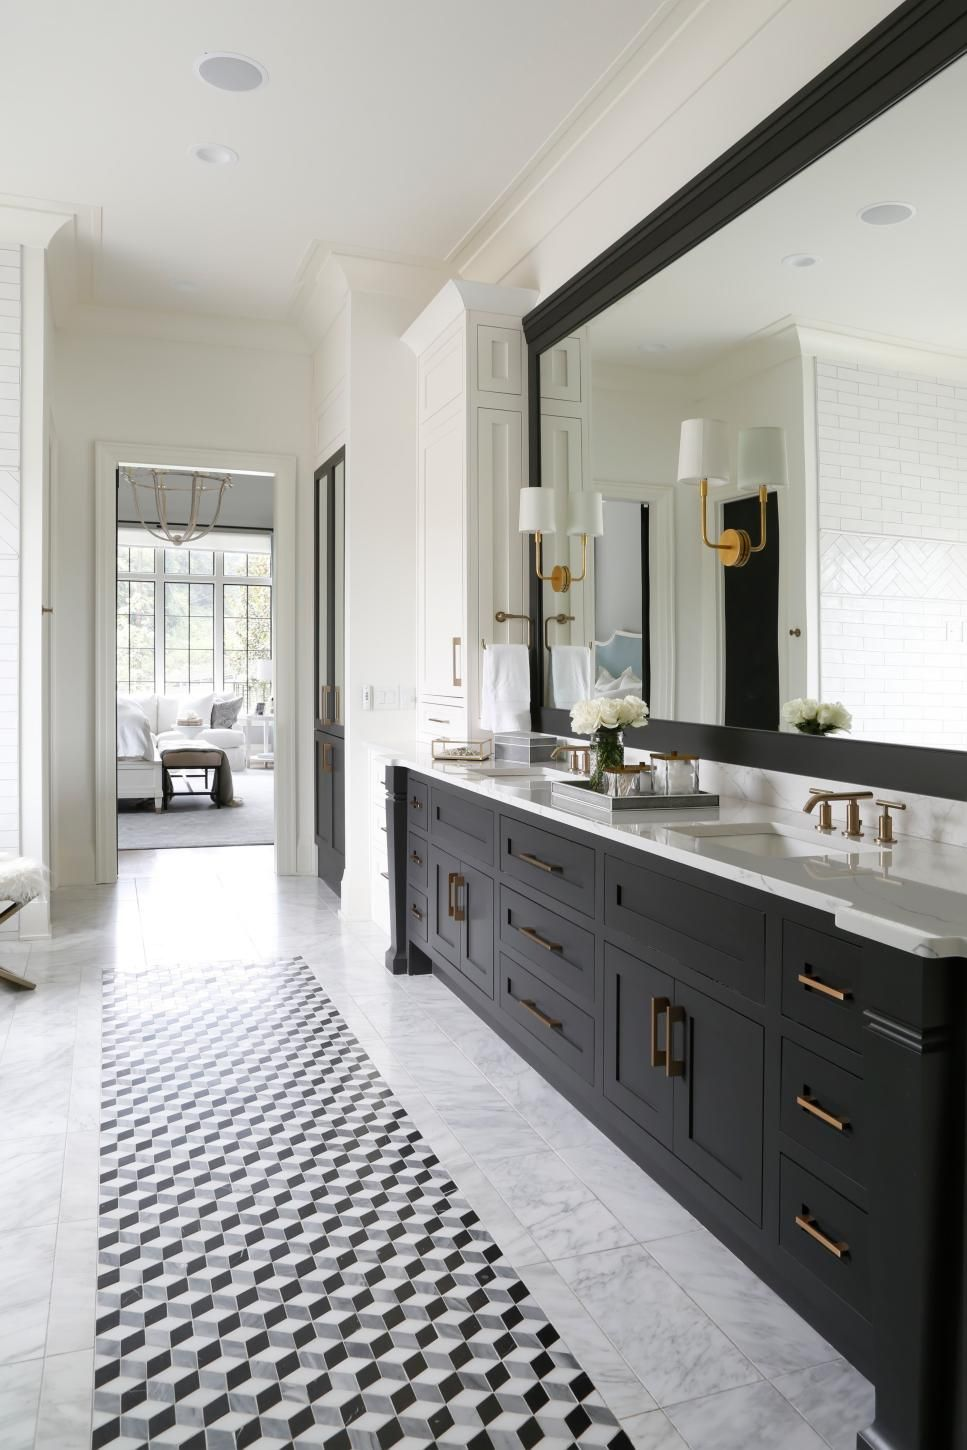 Traditional Black And White Master Bathroom With Double Vanity And ...